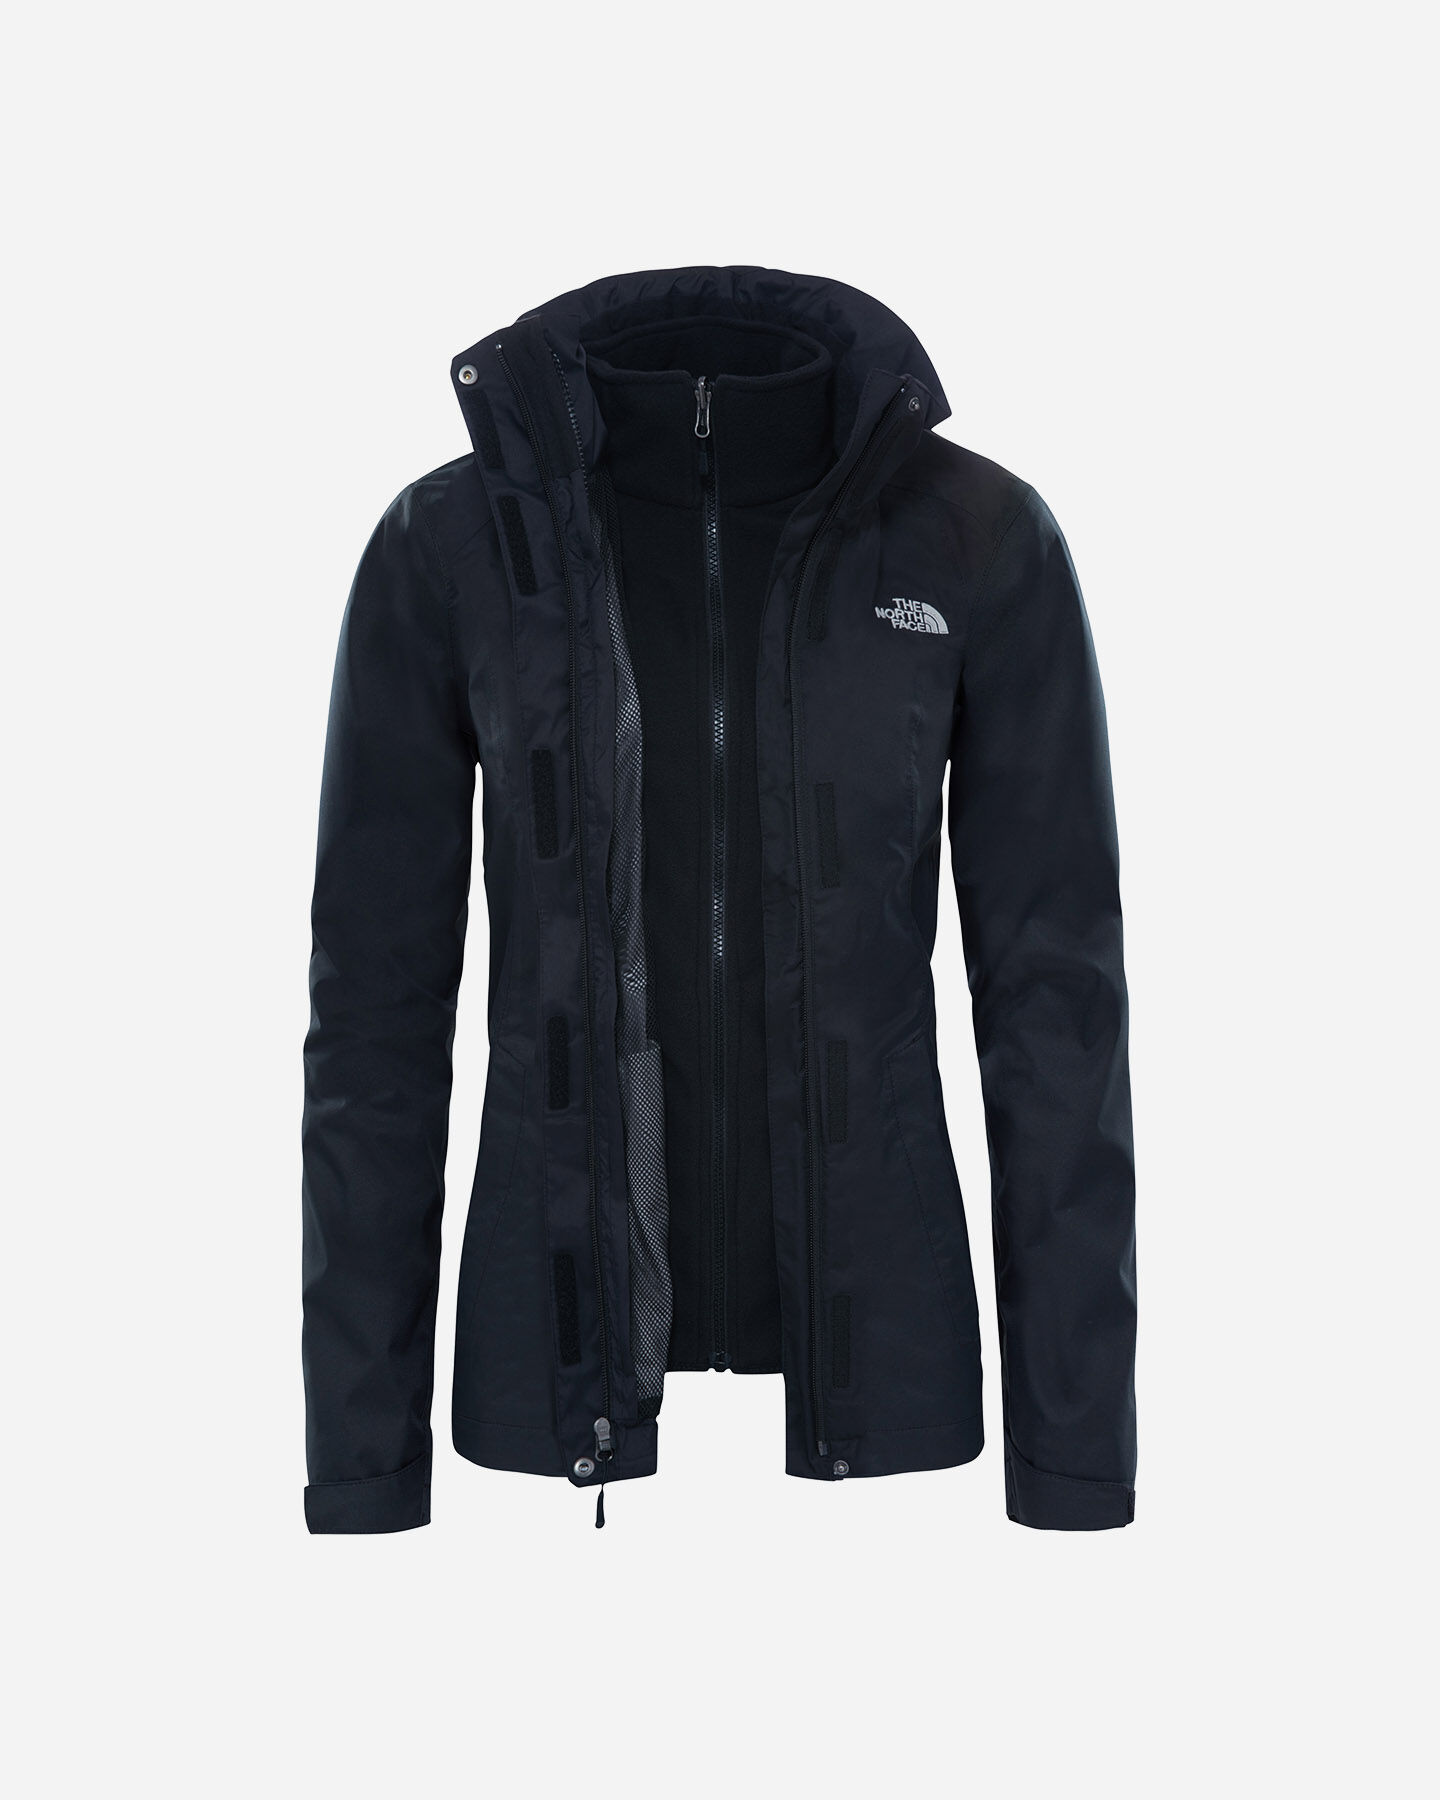 Giacca outdoor THE NORTH FACE EVOLVE II TRICLIMATE W S1283869 scatto 1